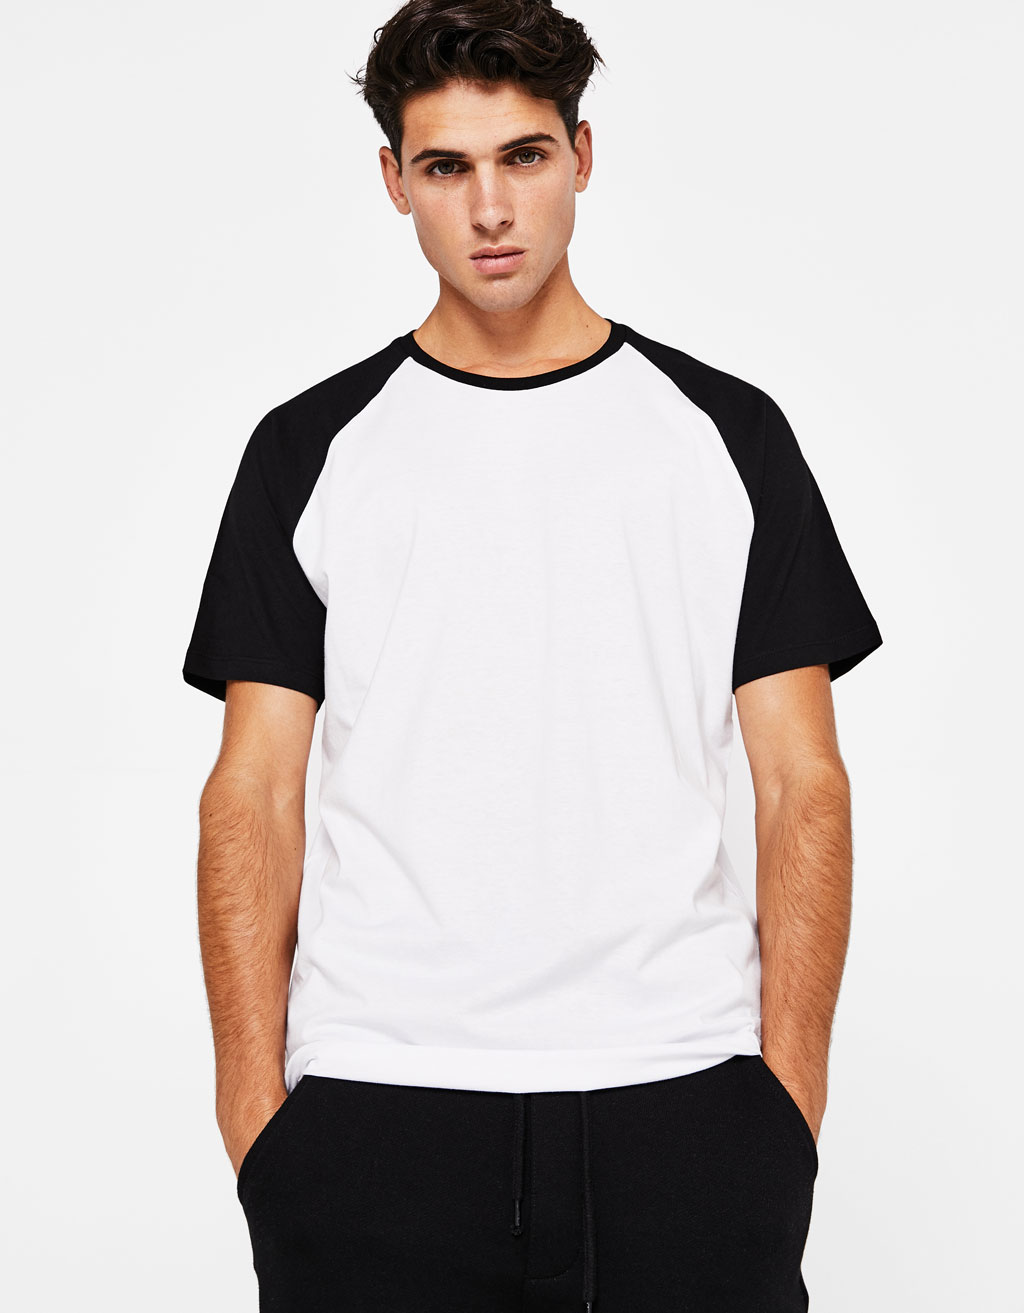 Baseball T-shirt with short sleeves